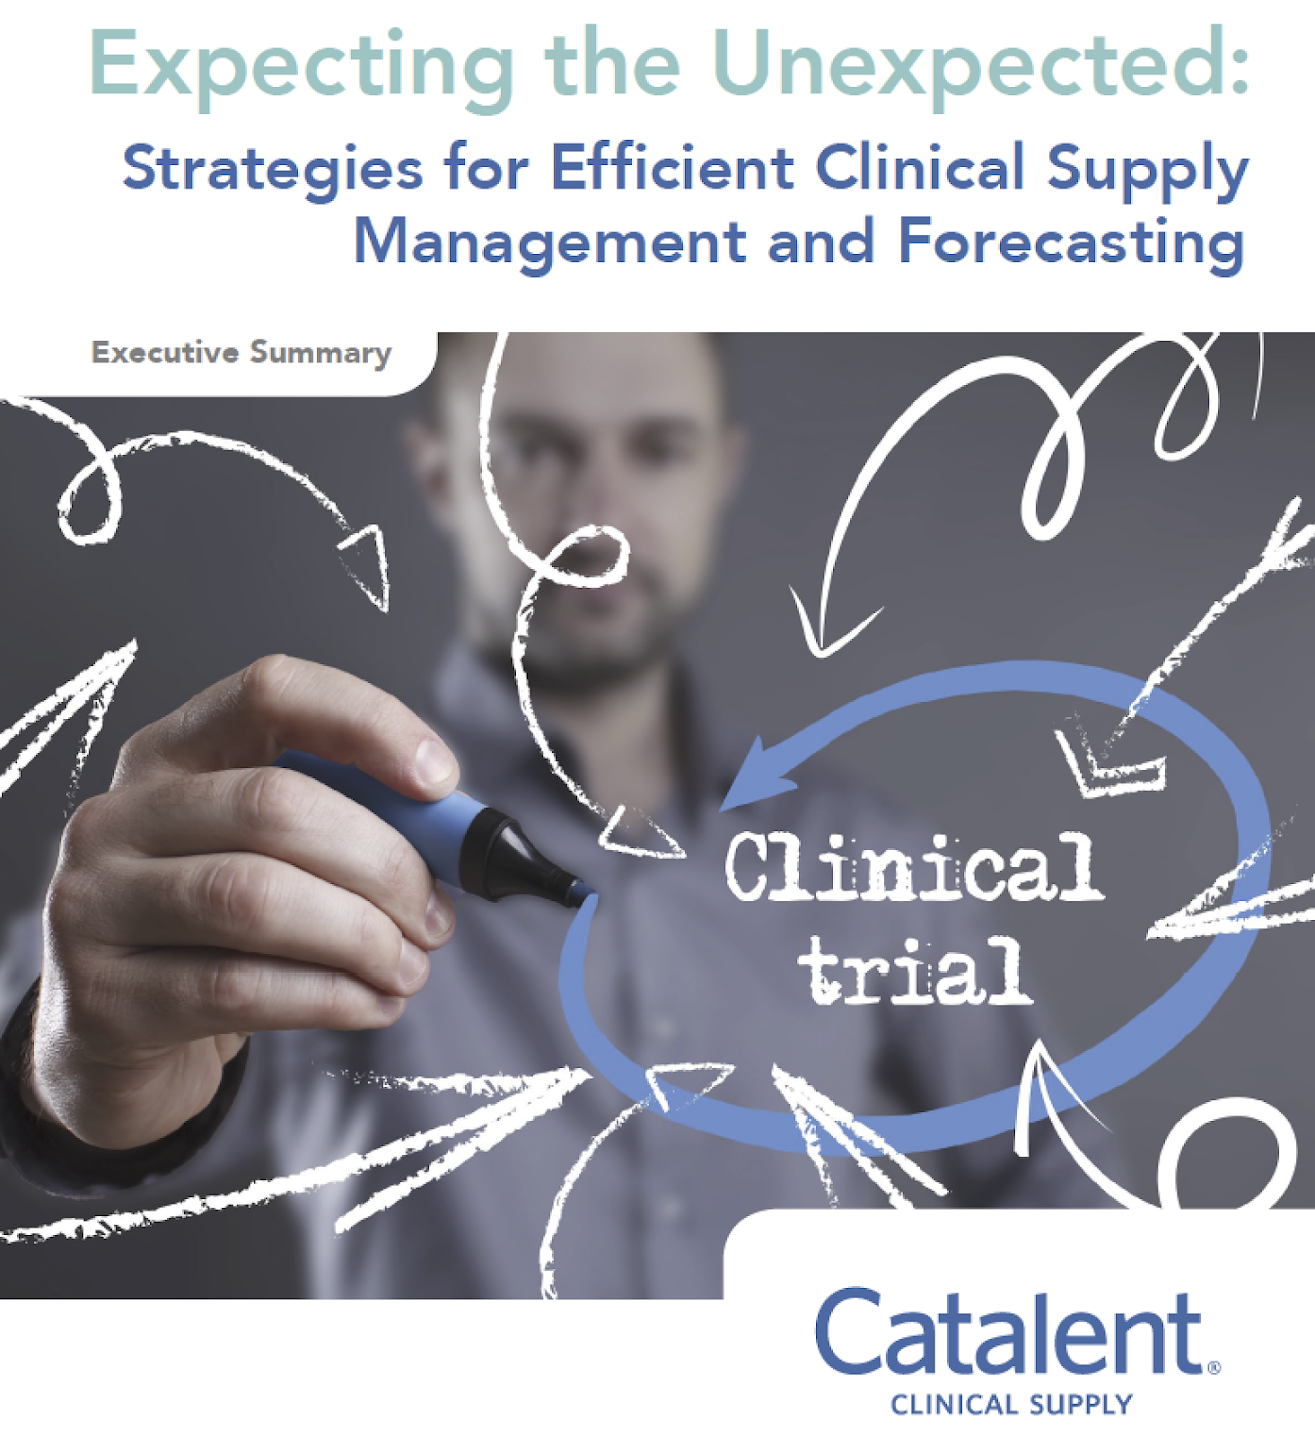 Strategies for Efficient Clinical Supply Management and Forecasting